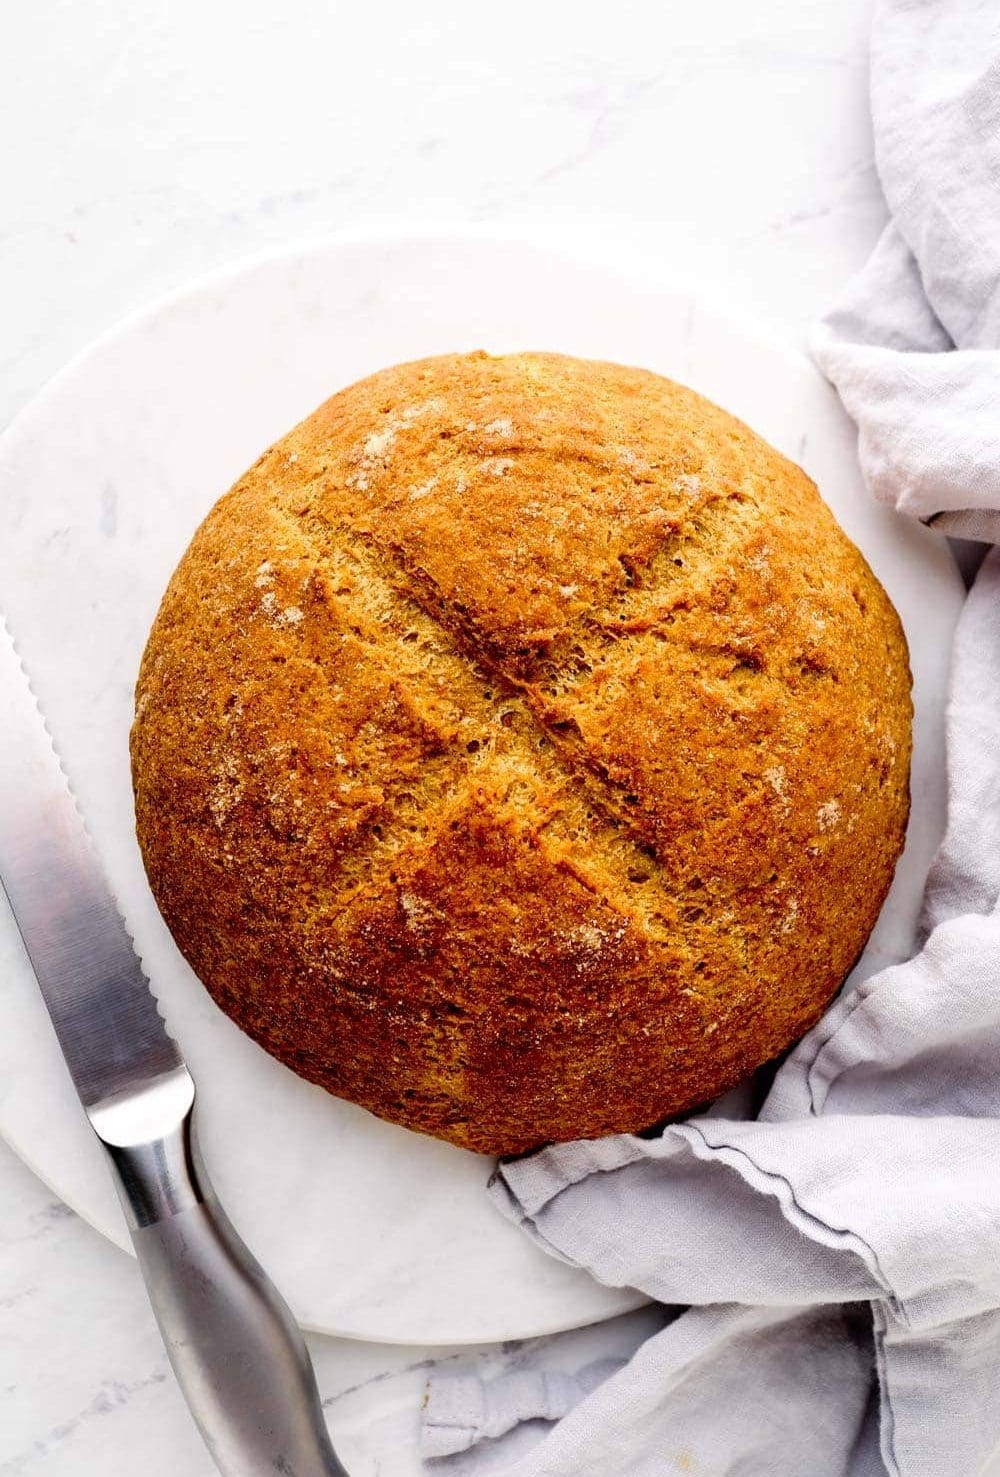 Artisan Gluten Free Bread out of the oven.